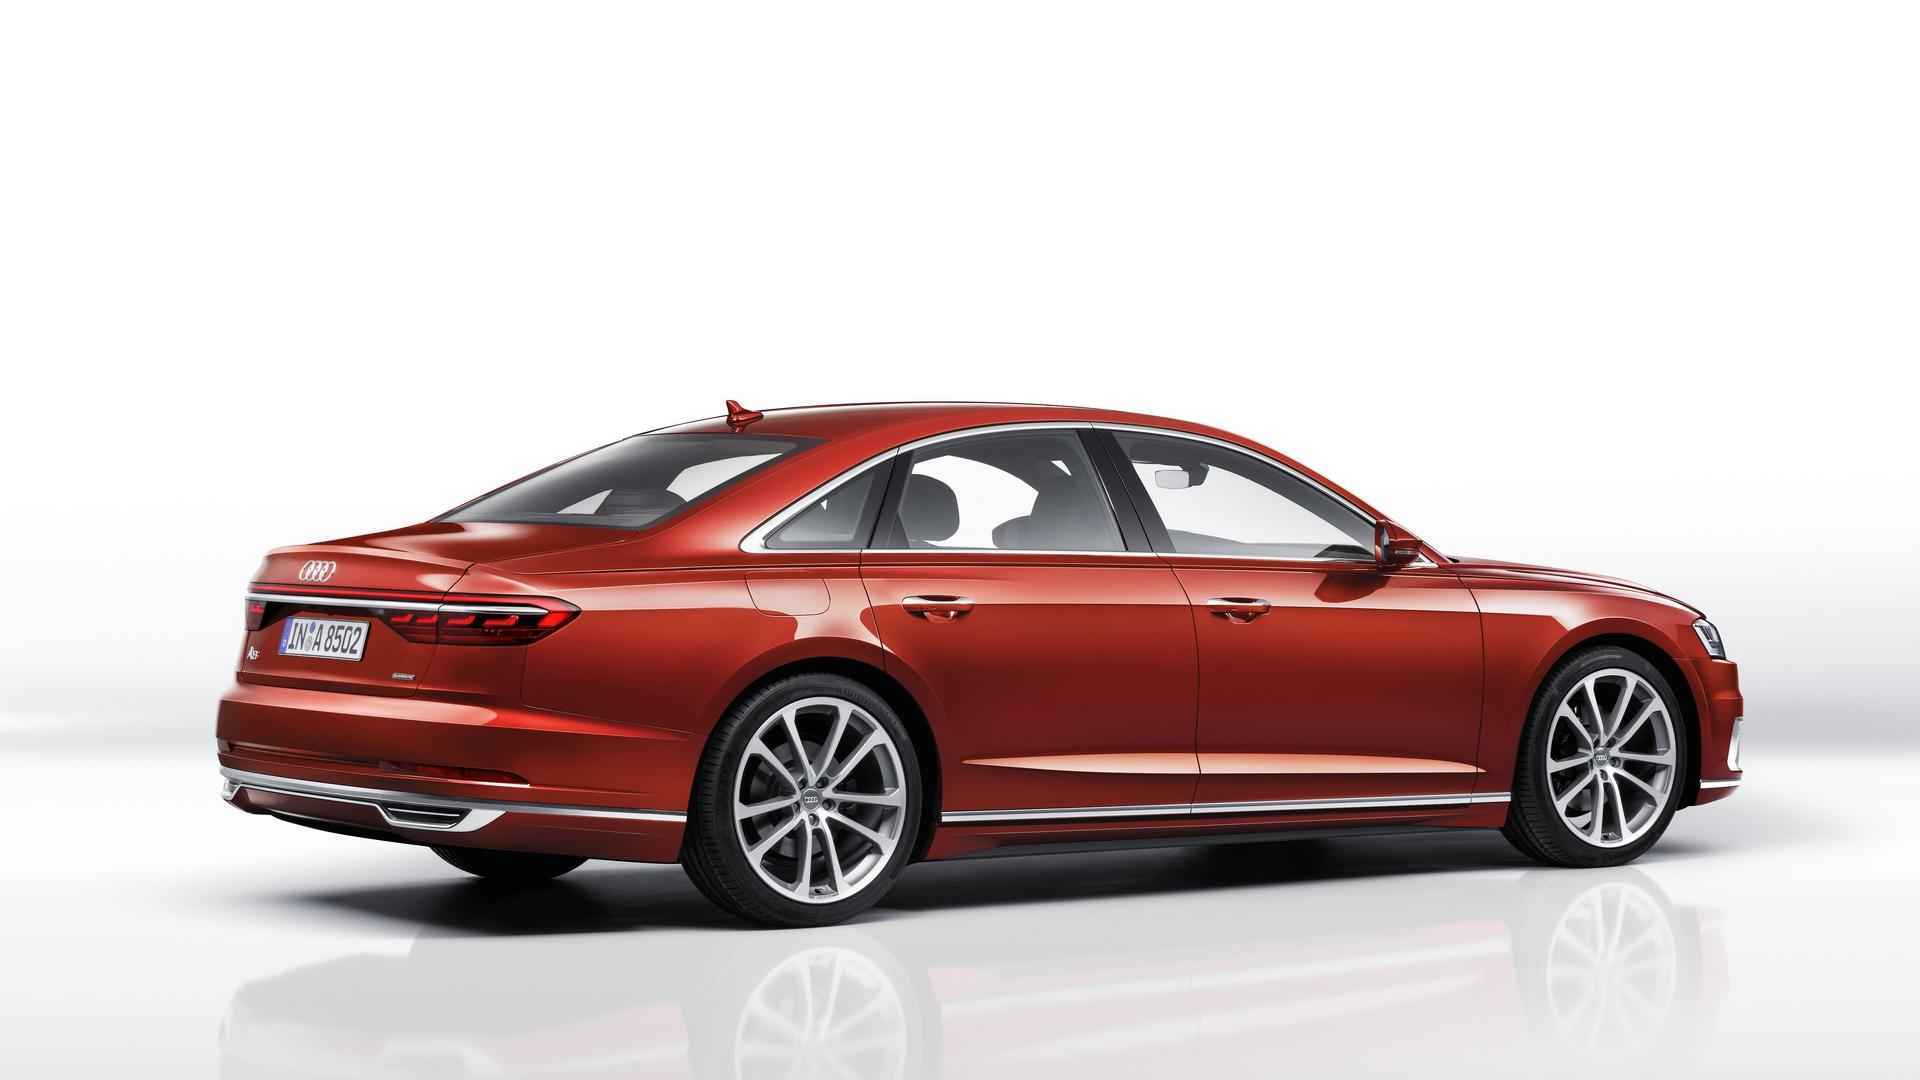 Watch The New Audi A8 Do 0 62 Mph In 5 5 Seconds With Ease